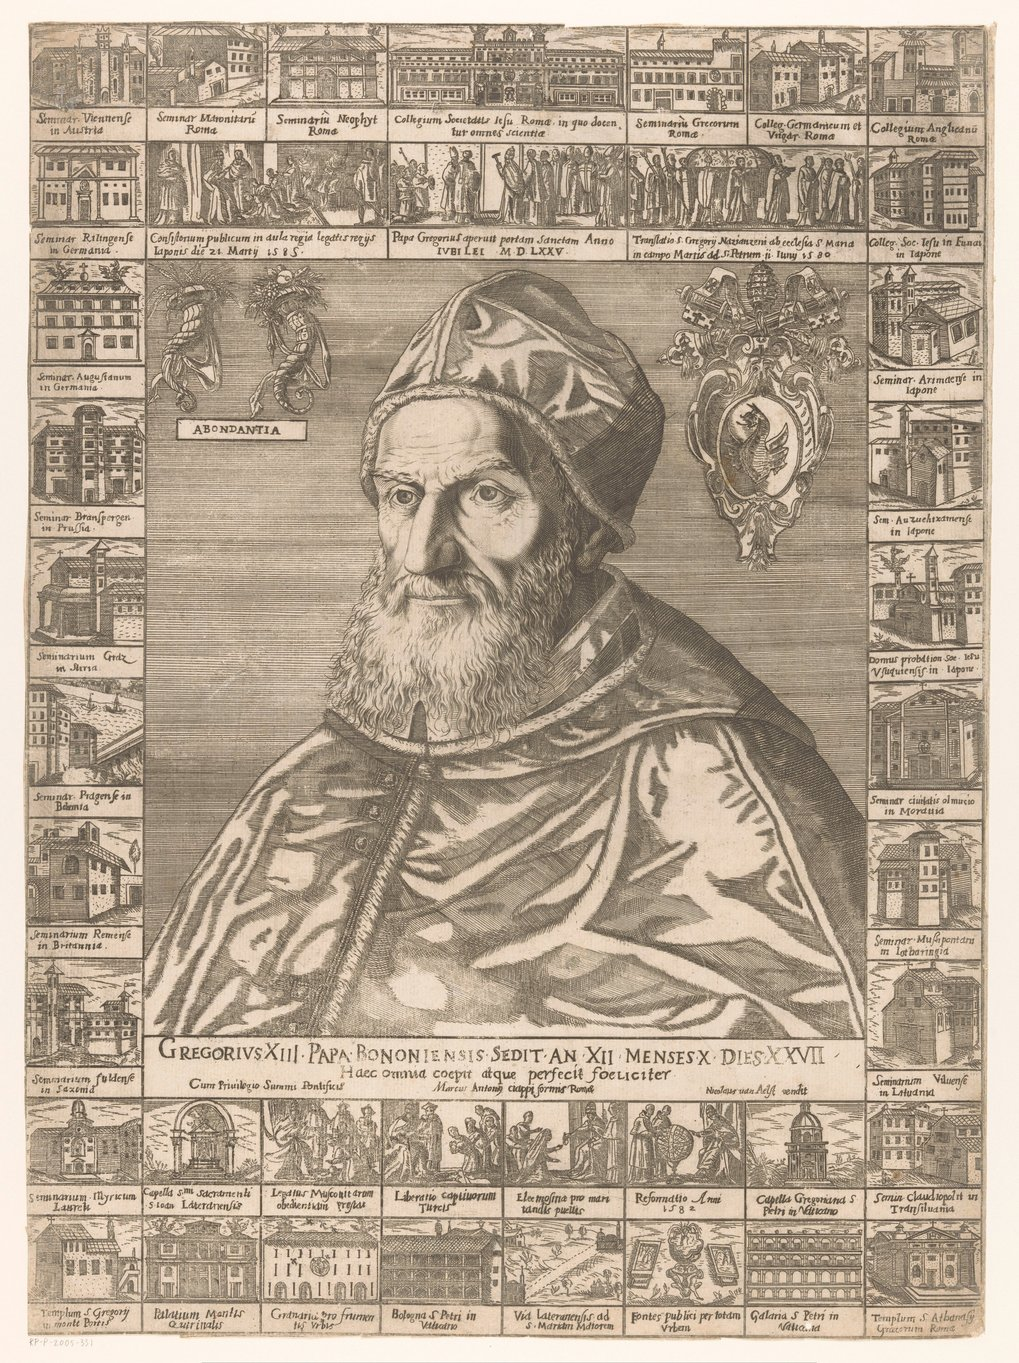 "<p class=""TextJahrbuch"">Gregory XIII and the Foreign Communities in Rome</p>"